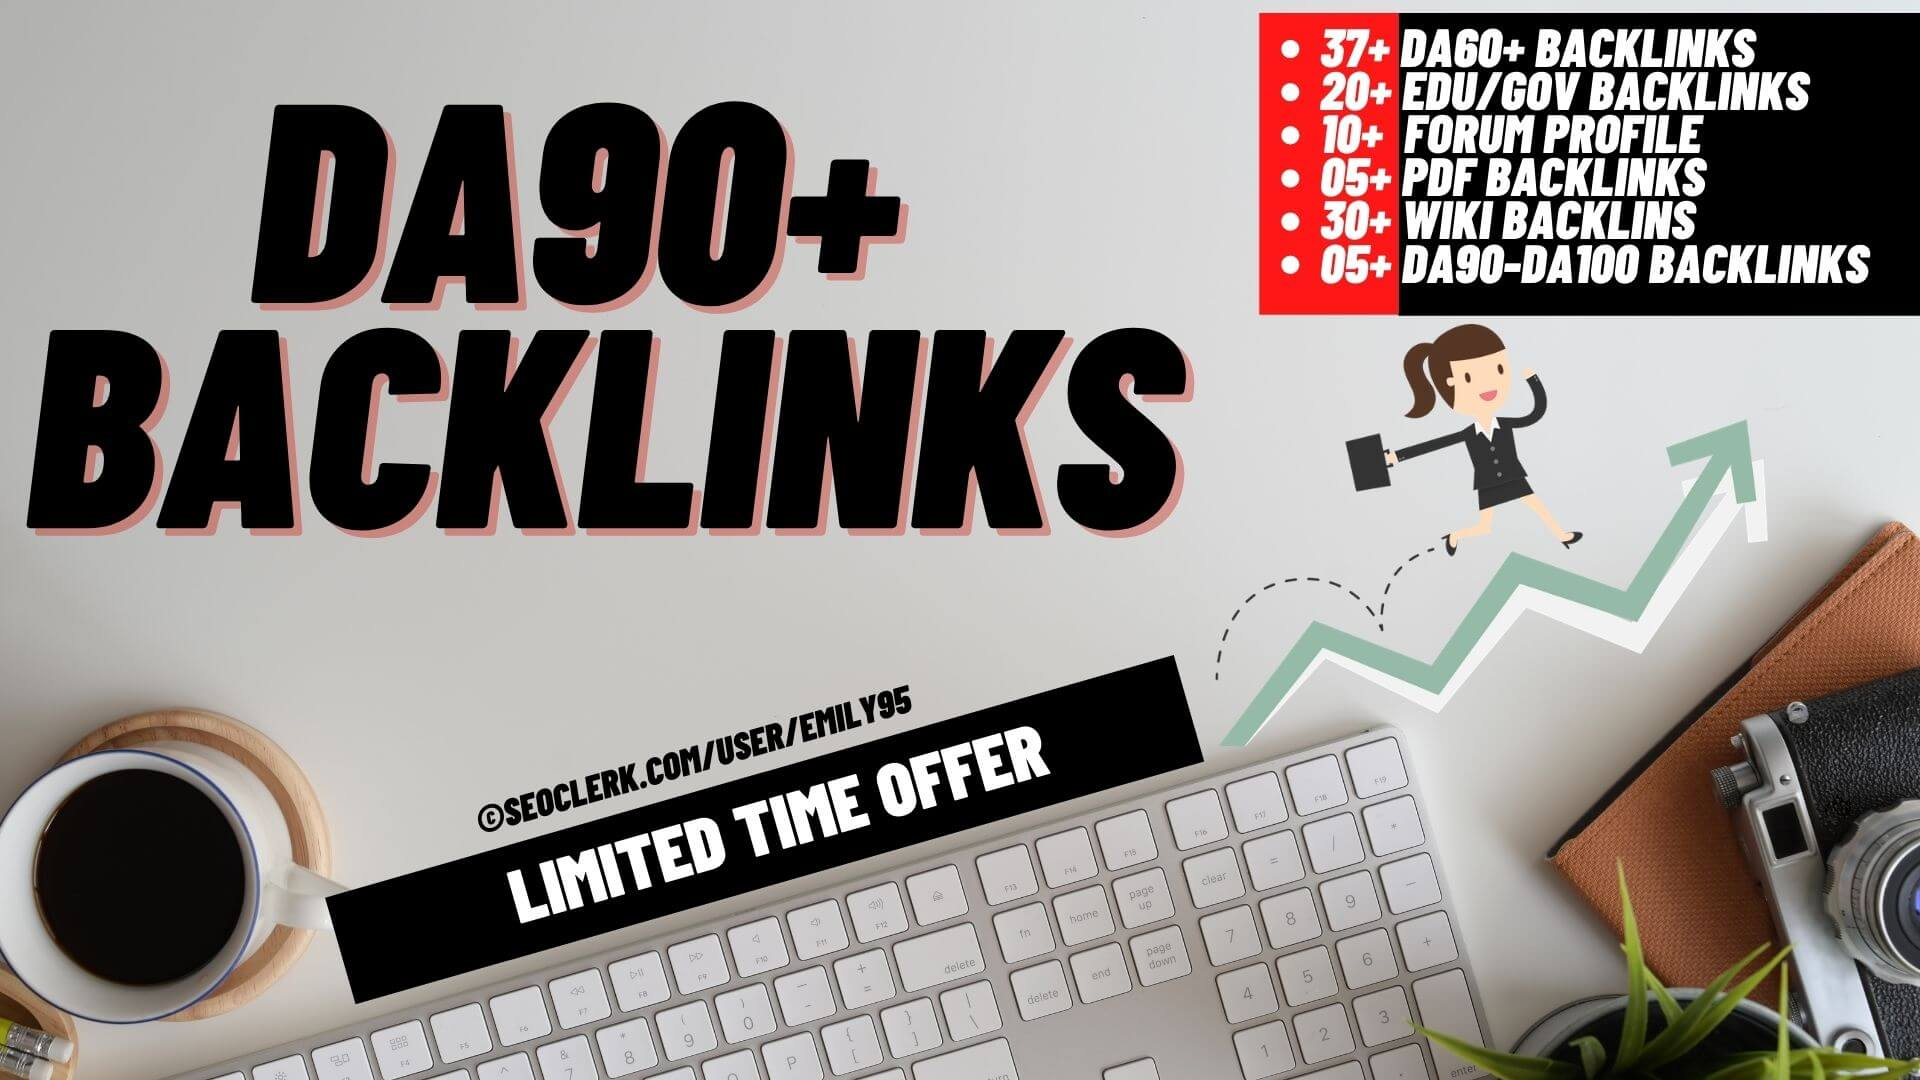 DA90+ Backlinks - 30 Wiki,  20 Edu/Gov,  10 Forum Sites,  05 PDF,  37 DA60+ and 05 from DA90+